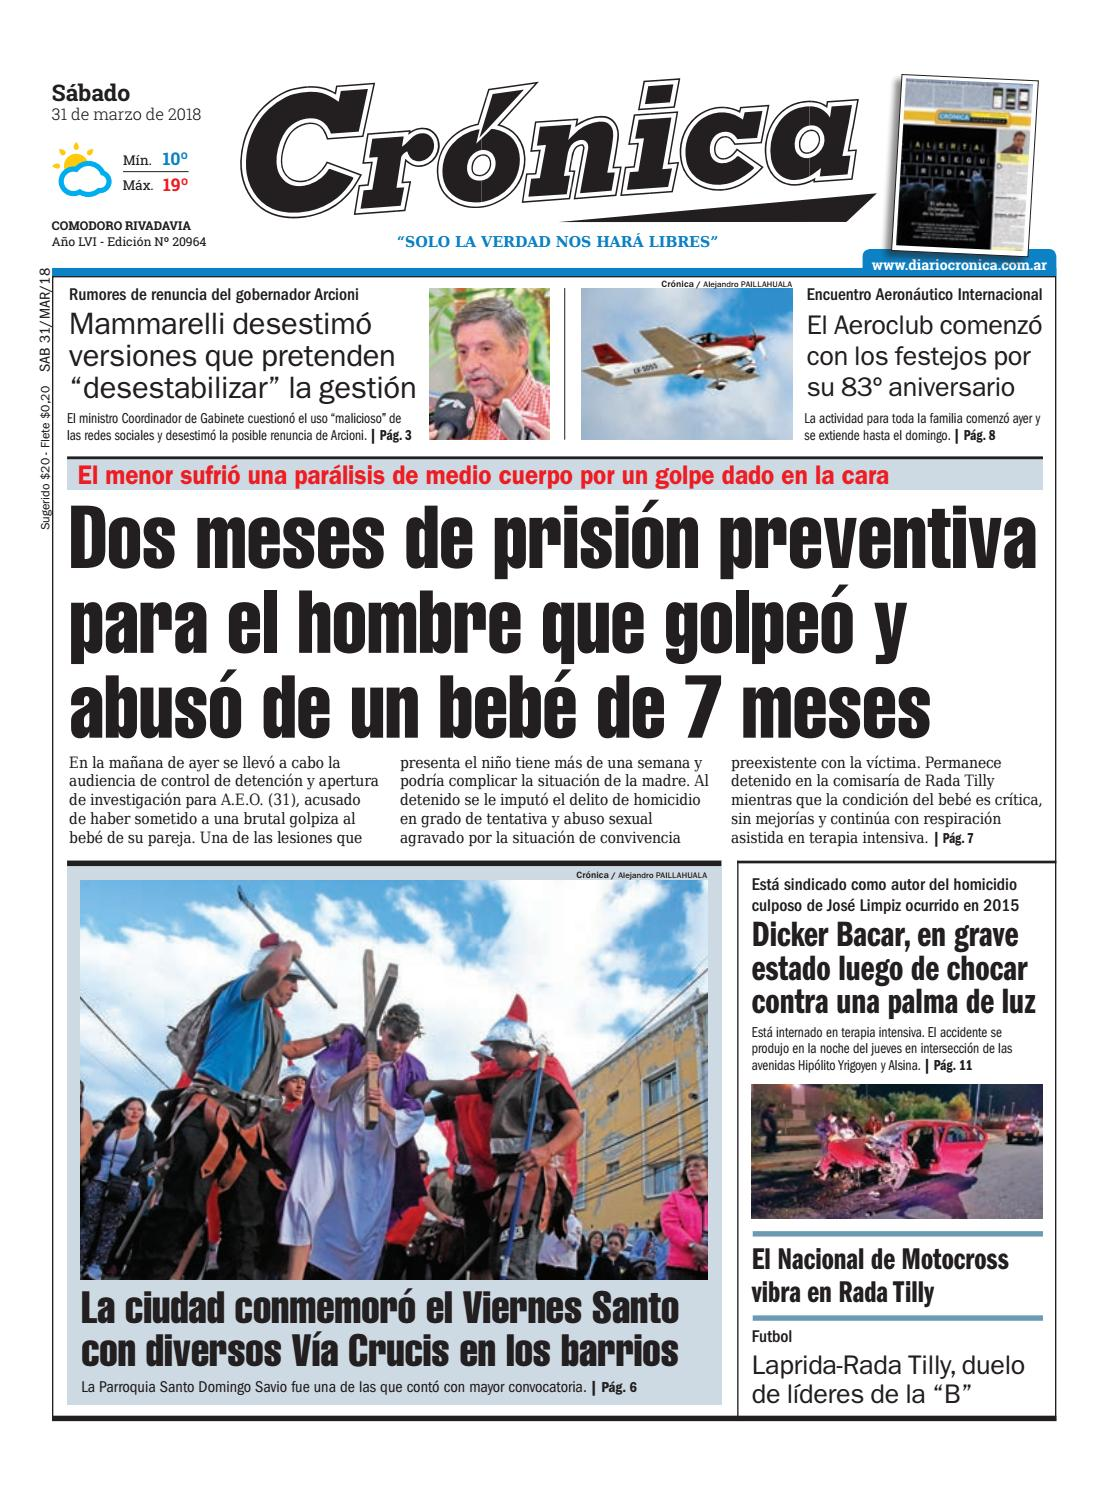 02220717f28 3809e7c7a939c9eaabe3132640bac5d1 by Diario Crónica - issuu